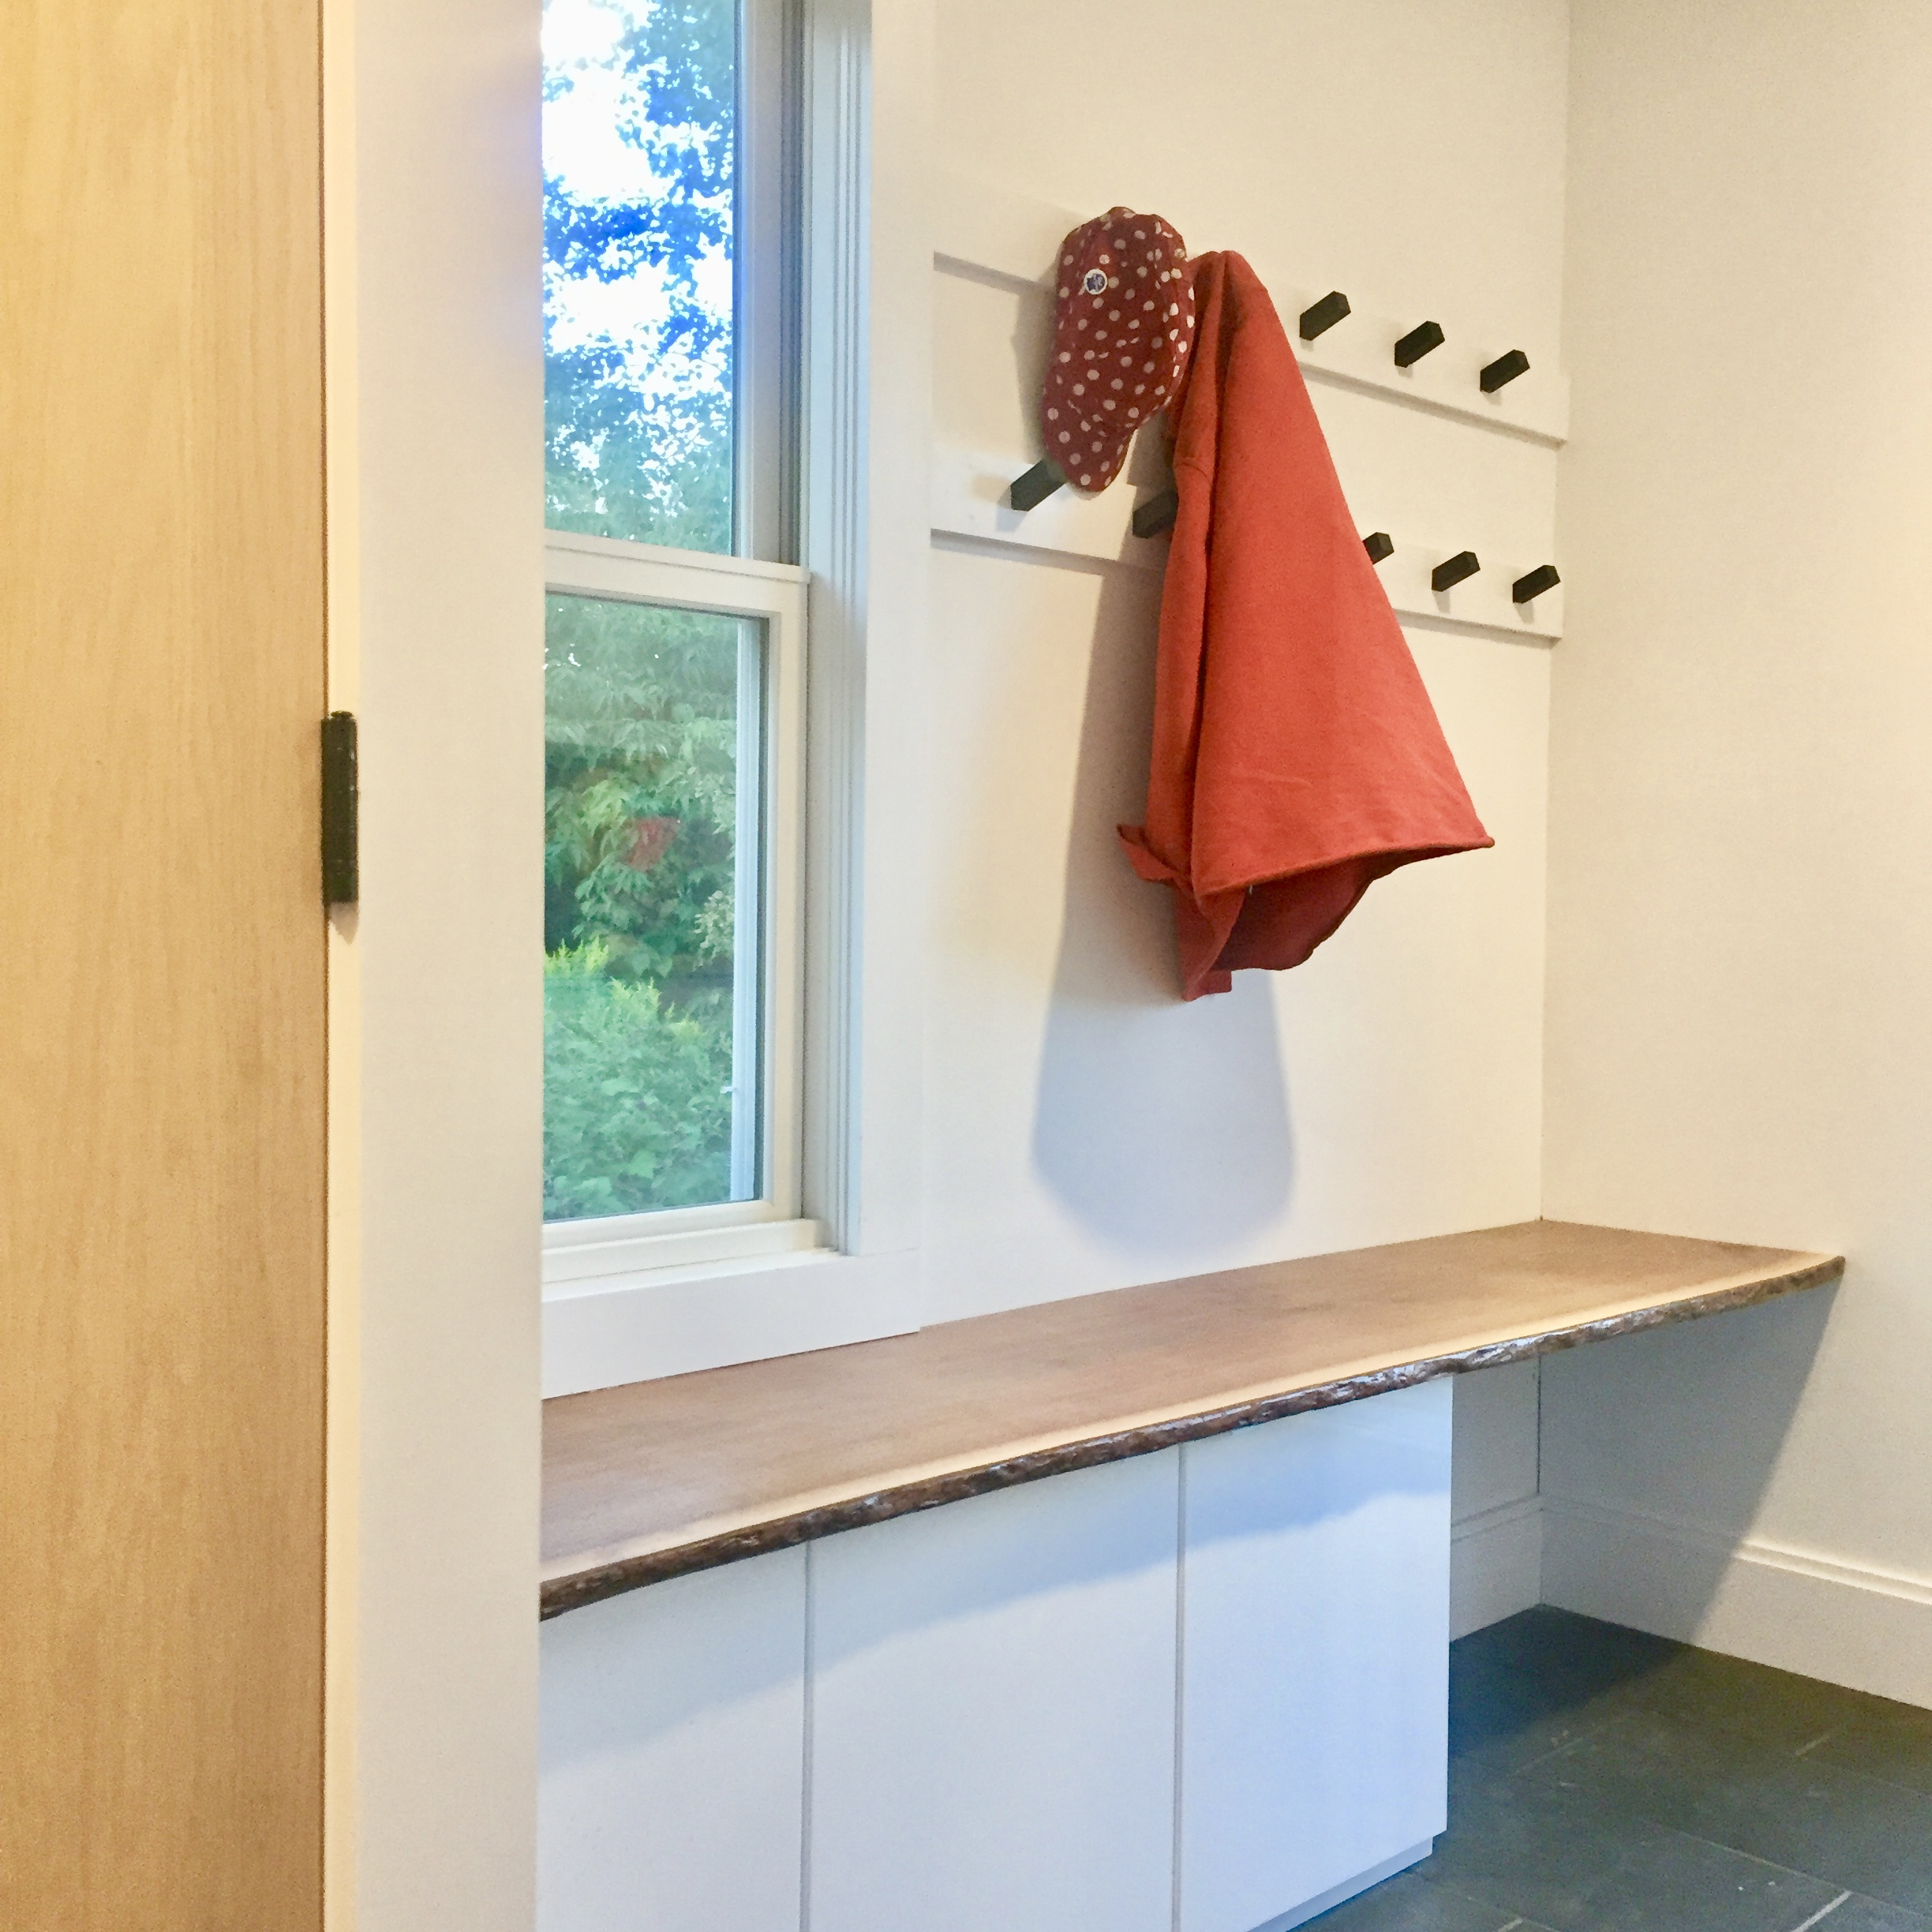 Who doesn't like a mudroom? And live-edge walnut? Storage and containing the mess was the name of the game here. The mudroom/laundry has brand new LG Steam washer and dryer, a counter for folding laundry, and closets, cubbies and hooks for all of your outdoor gear.